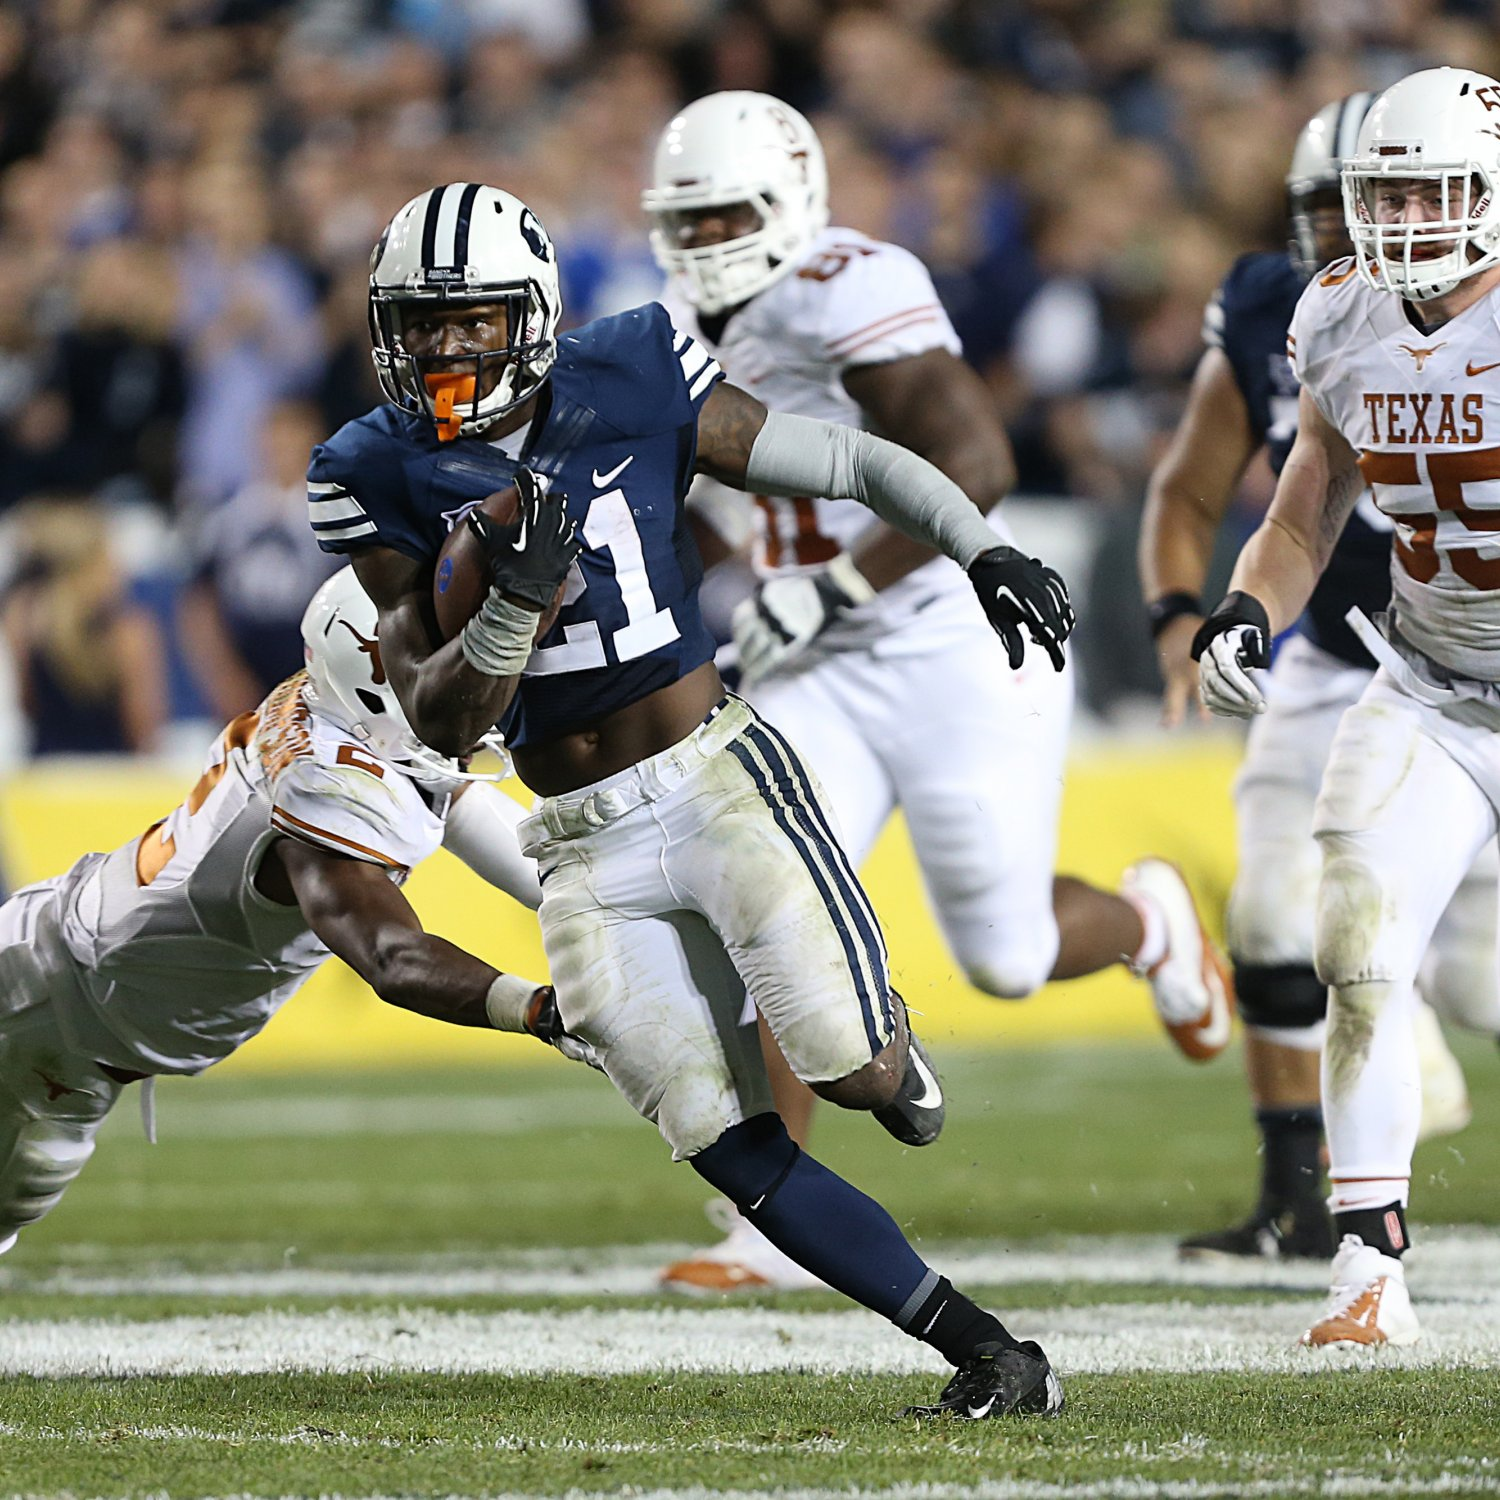 BYU Football: Without Utah Game, Texas Poses as 2014 ...